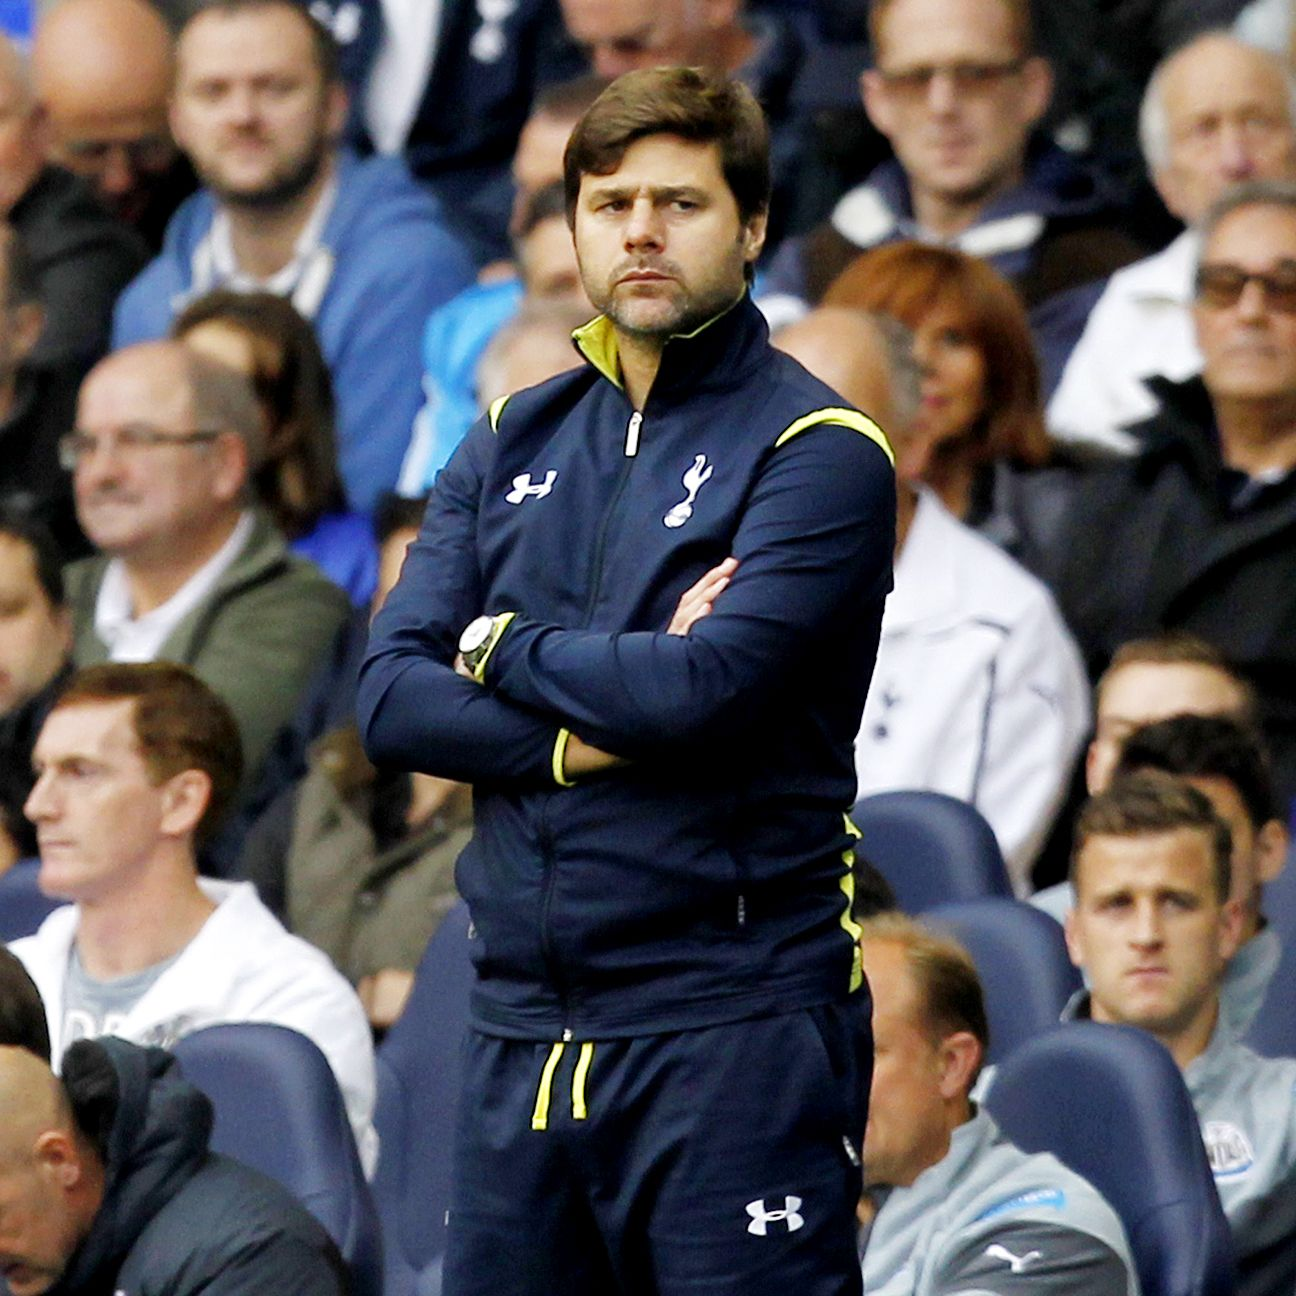 Mauricio Pochettino's Tottenham slumped to their second straight Premier League defeat on Sunday.